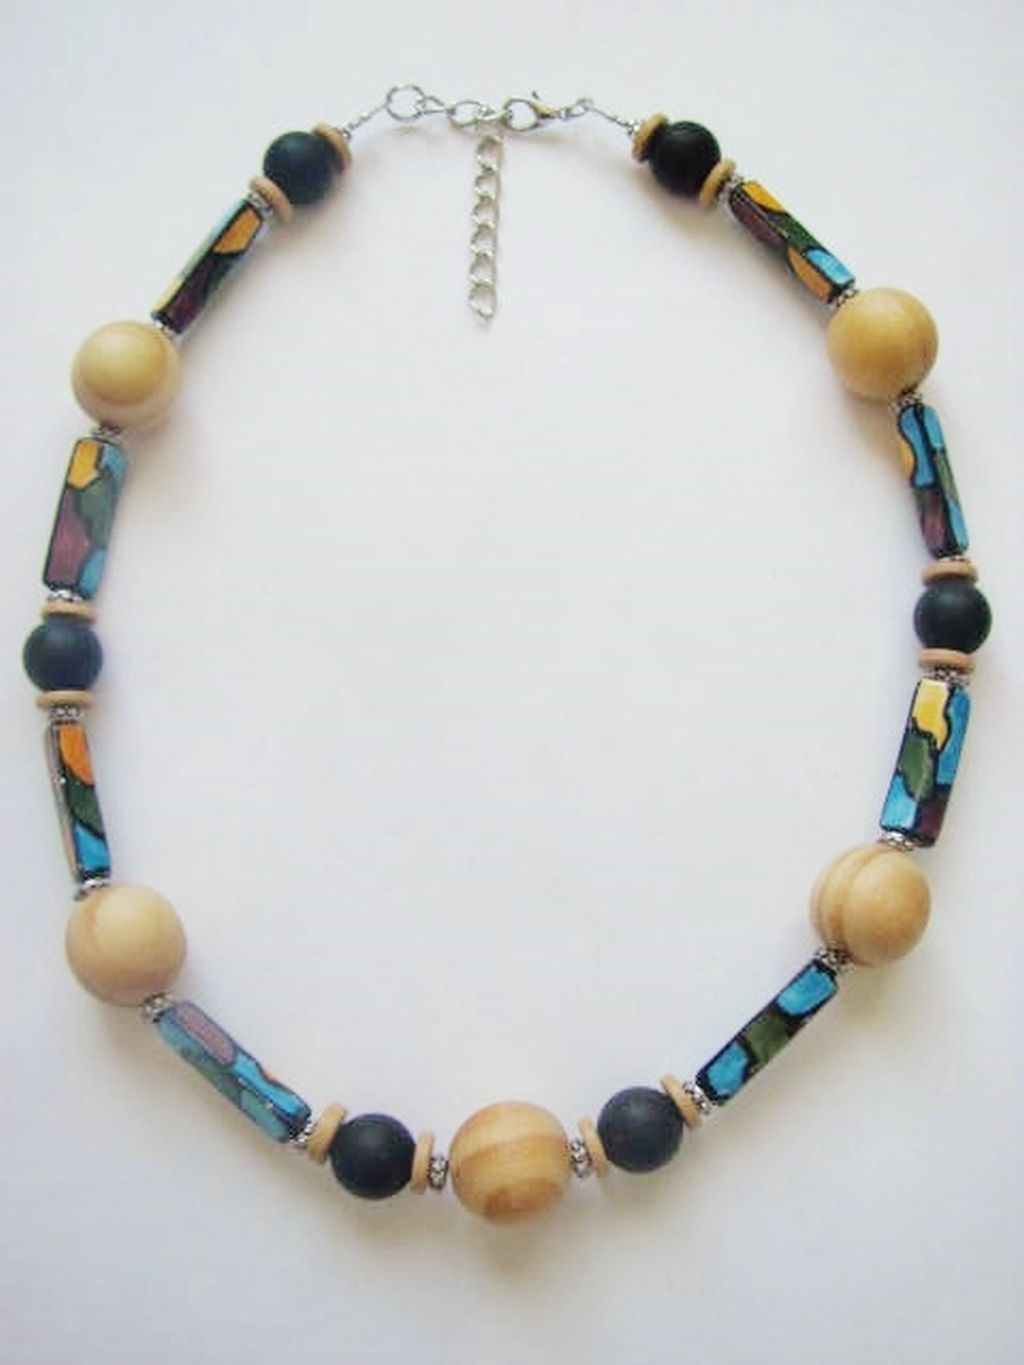 Ocean Wave Large Wood & Stone Bead Surfer Beach Necklace, Men's Unisex